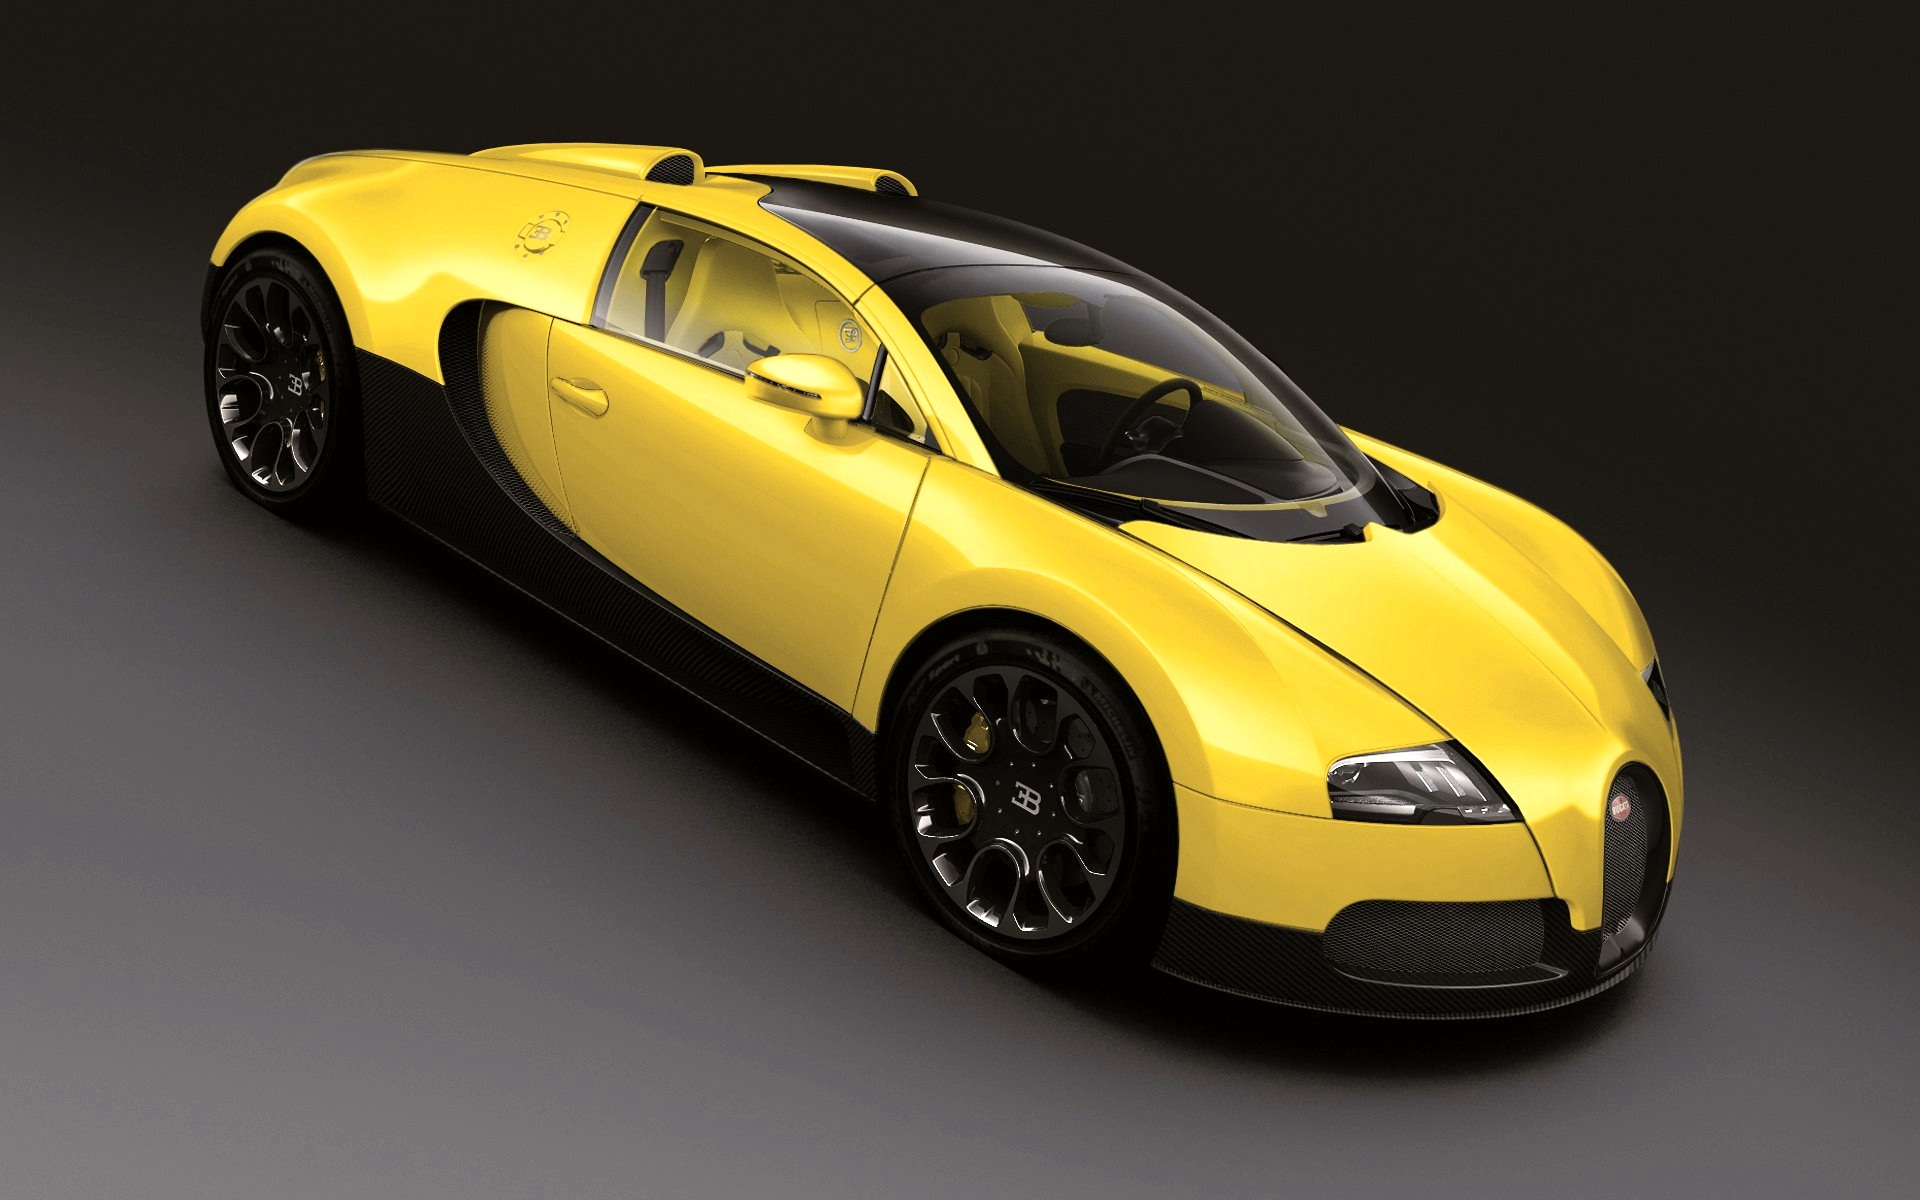 4169781-bugatti-veyron-16-4-grand-sport-2011 Terrific Bugatti Veyron Grand Sport Vitesse Gold Cars Trend